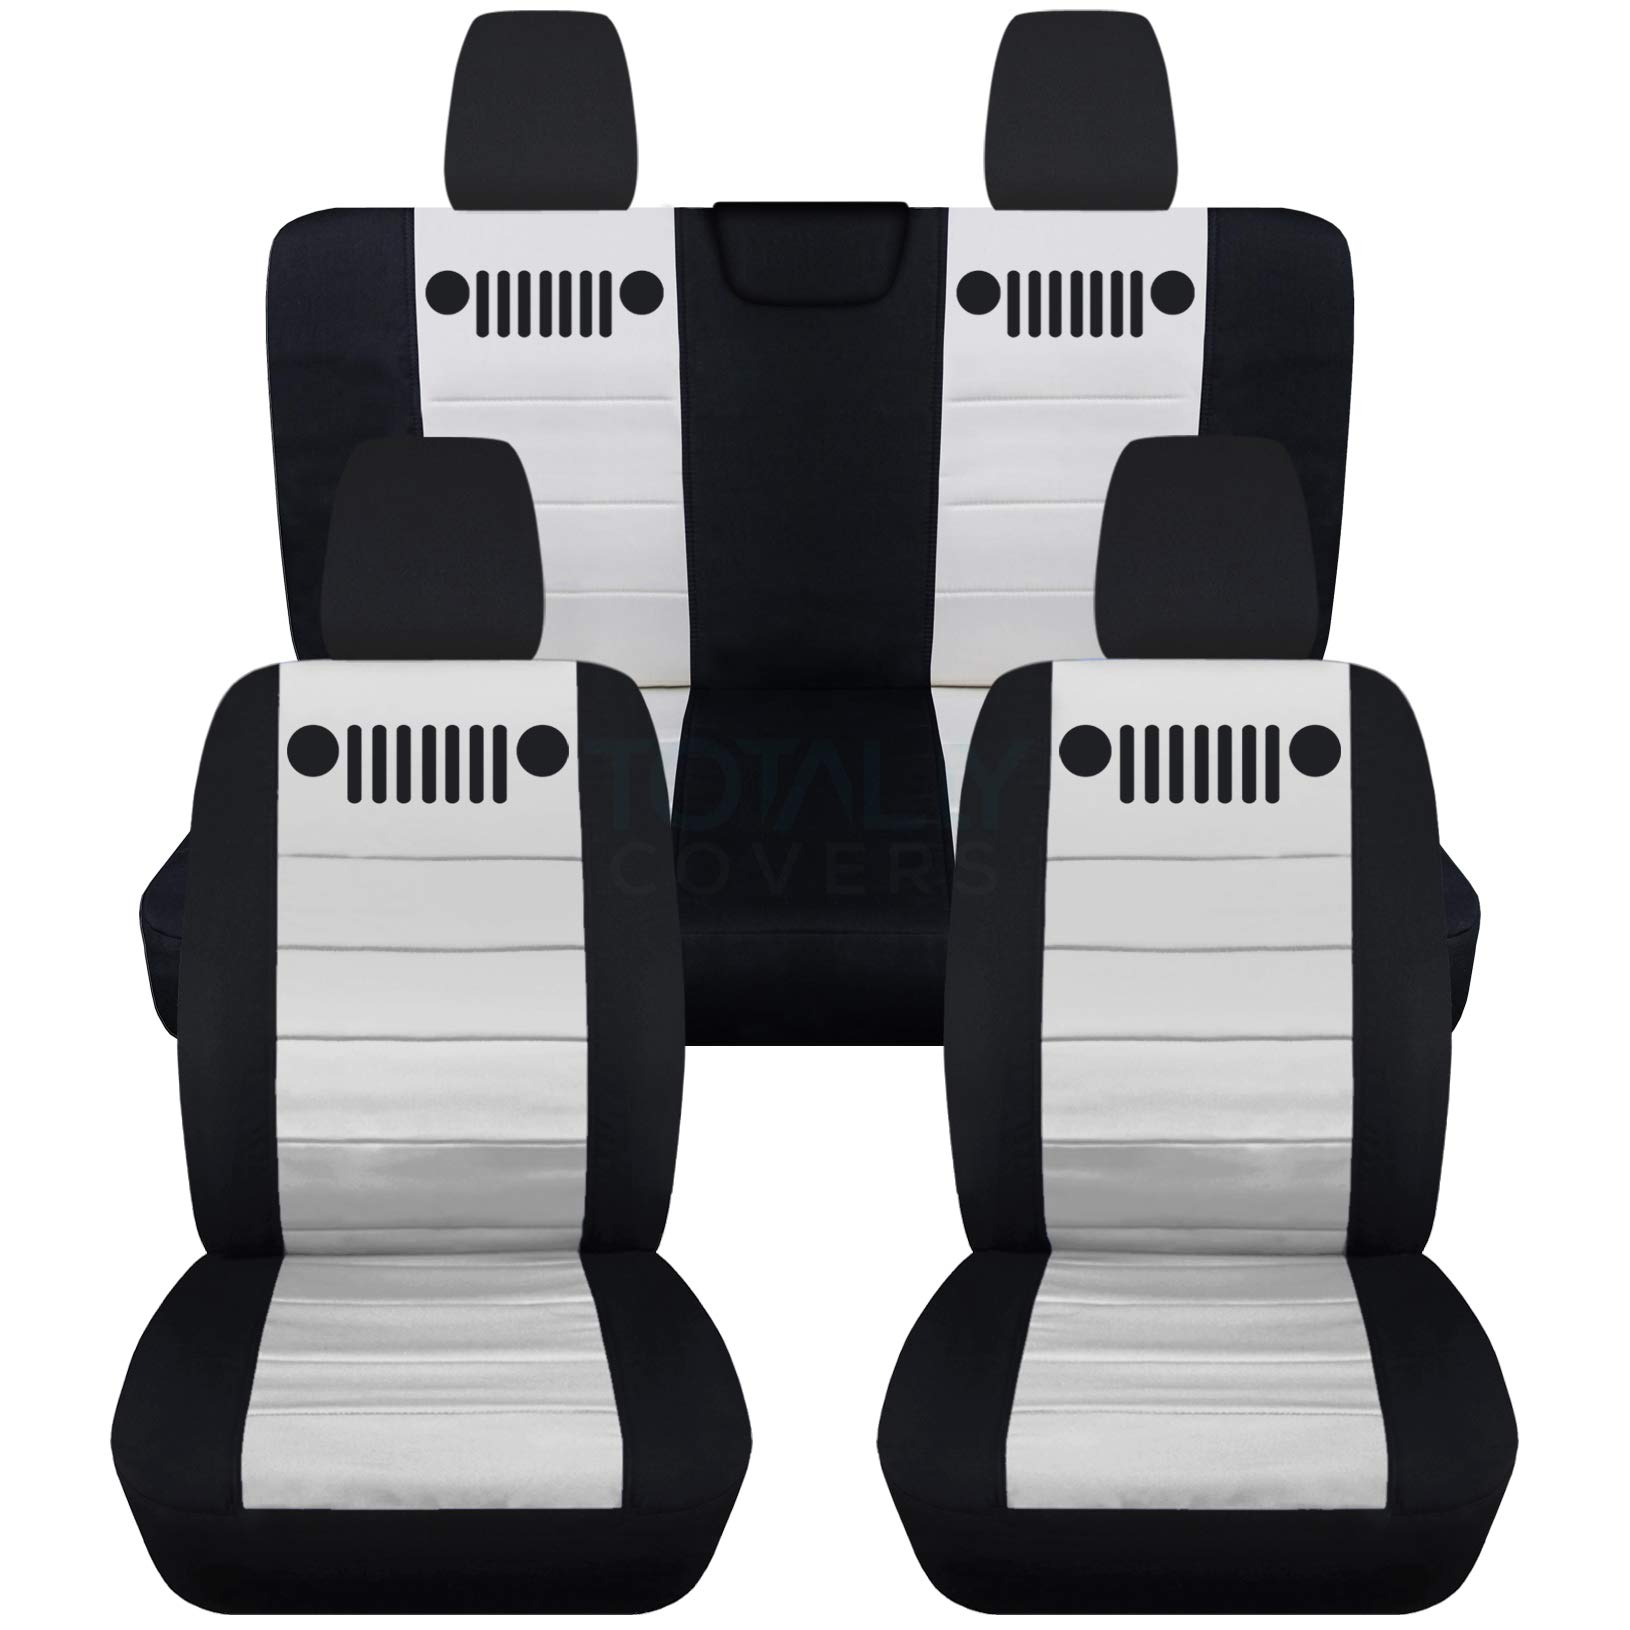 Totally Covers Fits 2018-2019 Jeep Wrangler JL Seat Covers: Black & White - Full Set: Front & Rear (23 Colors) 2-Door/4-Door Solid/Split Bench Back w/wo Armrest/Headrest